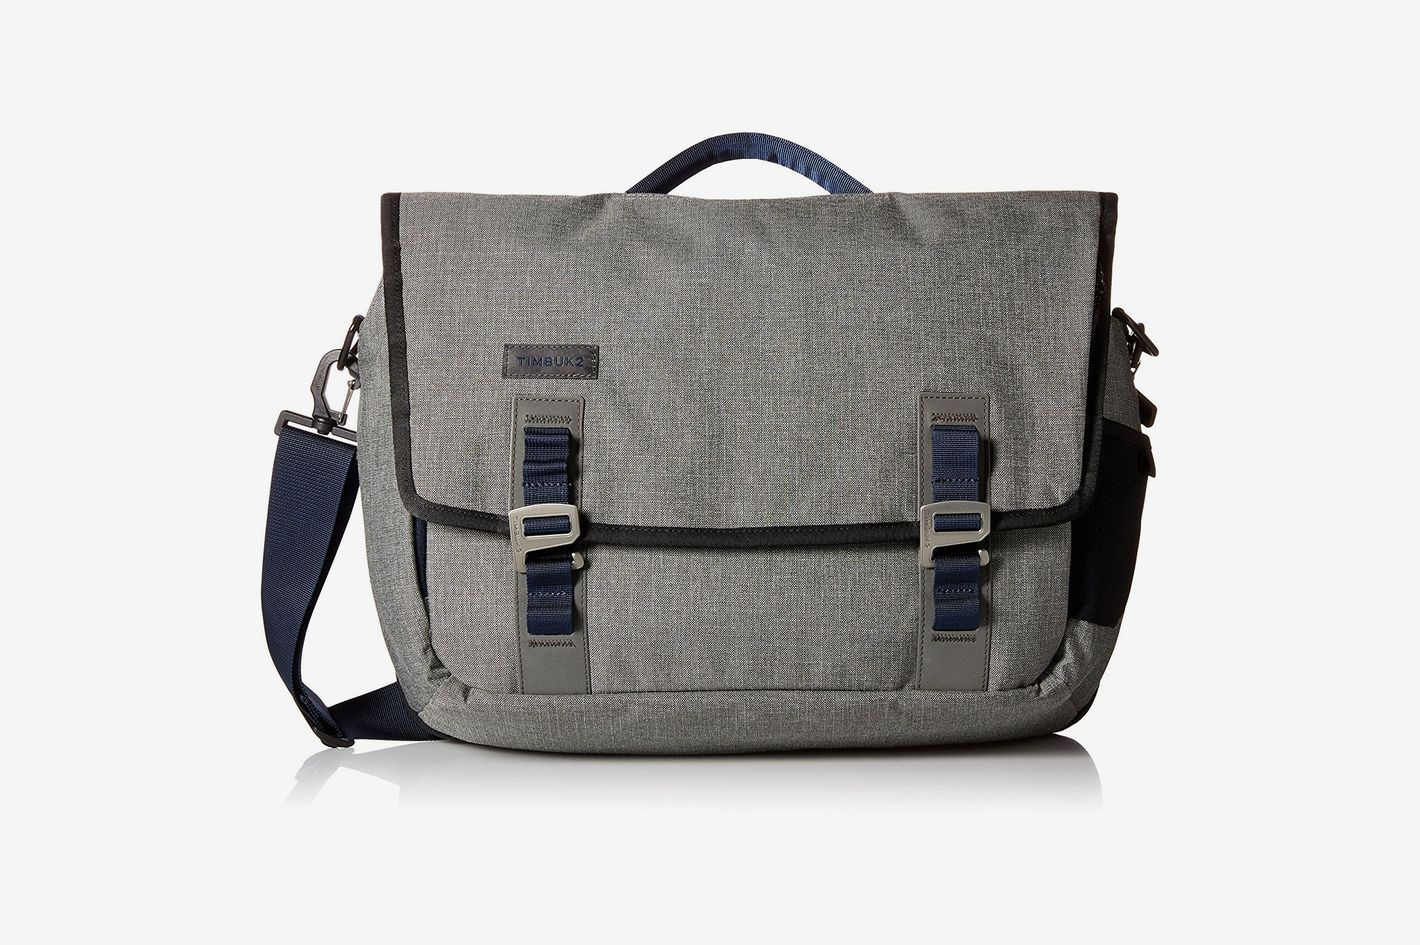 cadee9521 Timbuk2 Command Laptop Messenger Bag